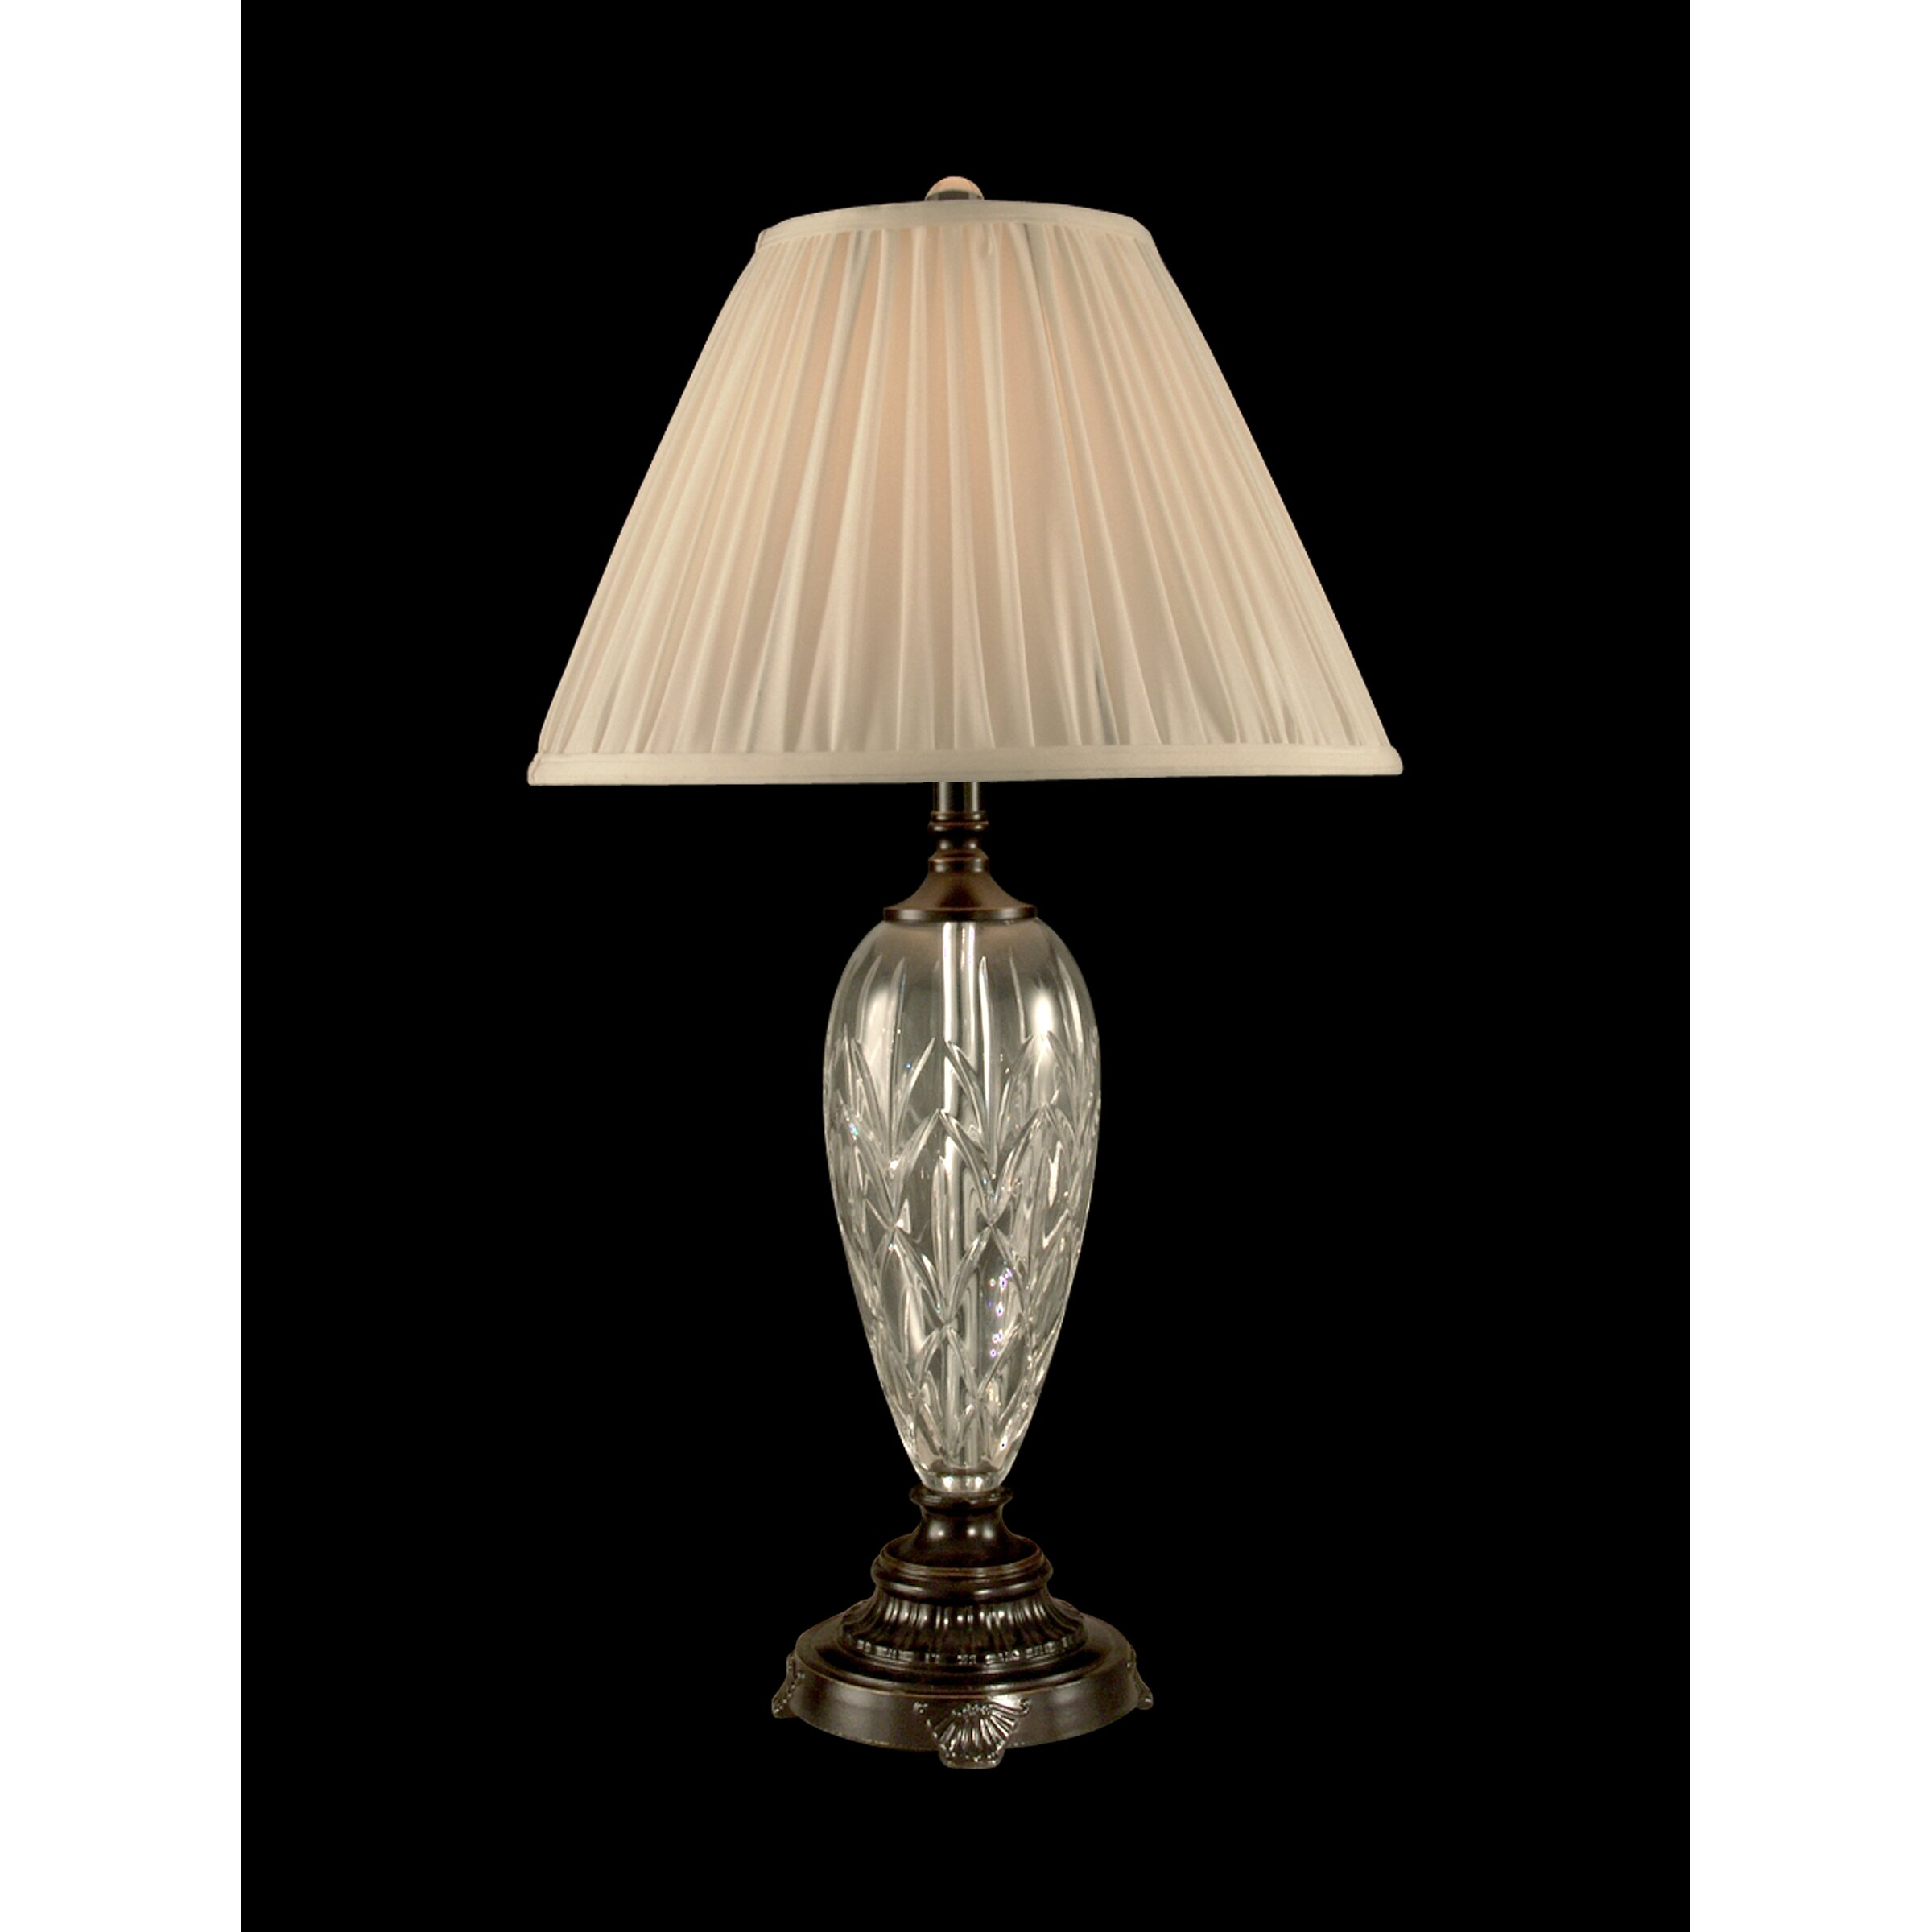 dale tiffany lucy crystal h table lamp with empire shade. Black Bedroom Furniture Sets. Home Design Ideas